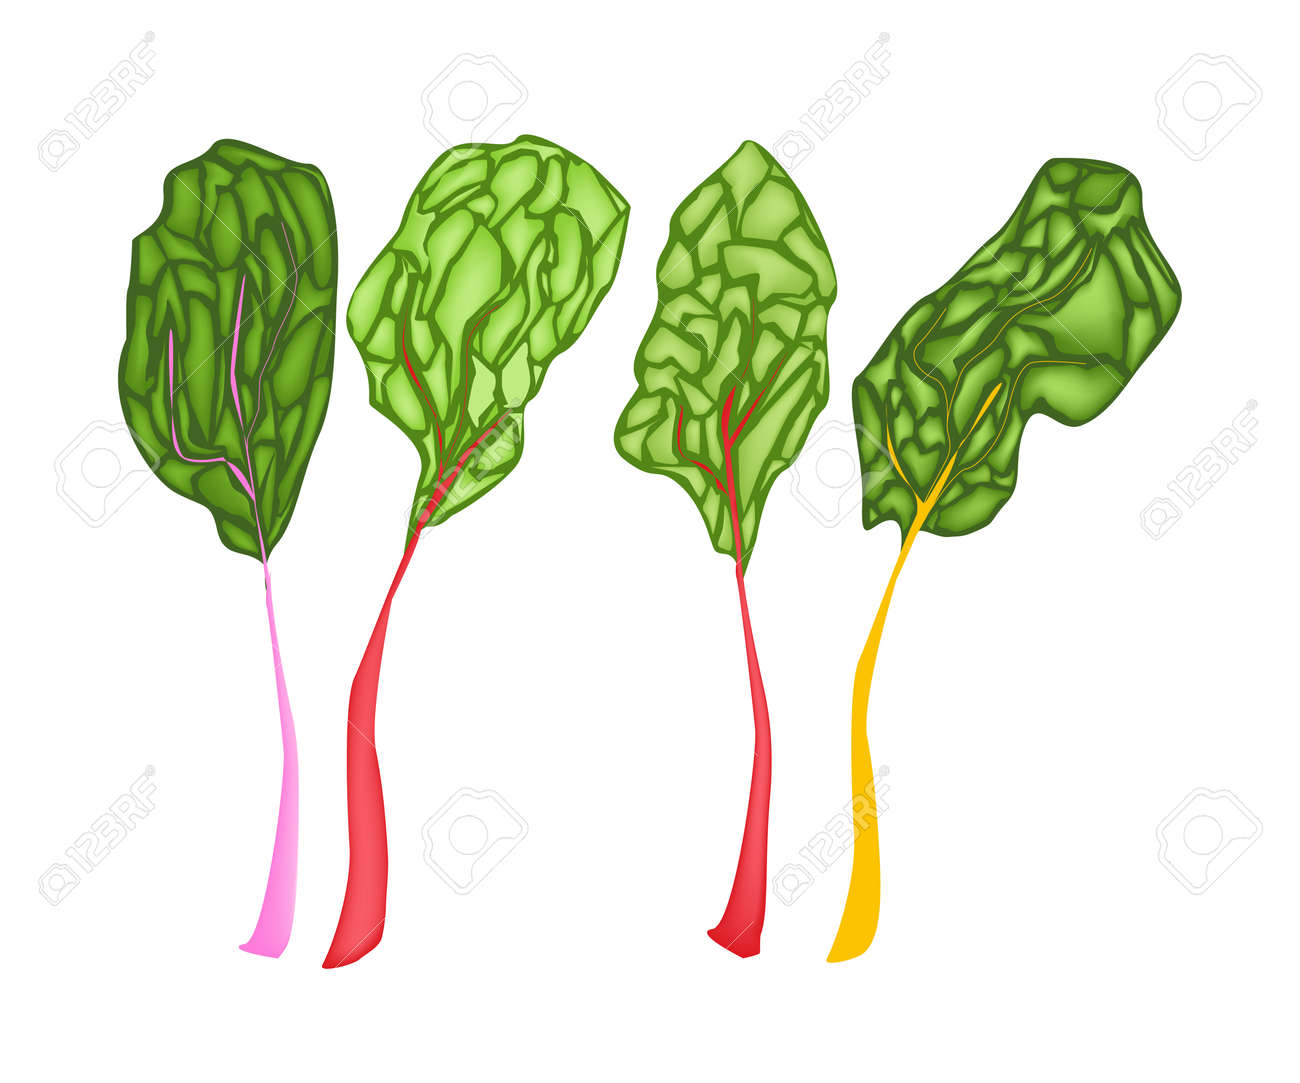 Vegetable Vector Illustration Of Delicious Fresh Rainbow Swiss Royalty Free Cliparts Vectors And Stock Illustration Image 26796355